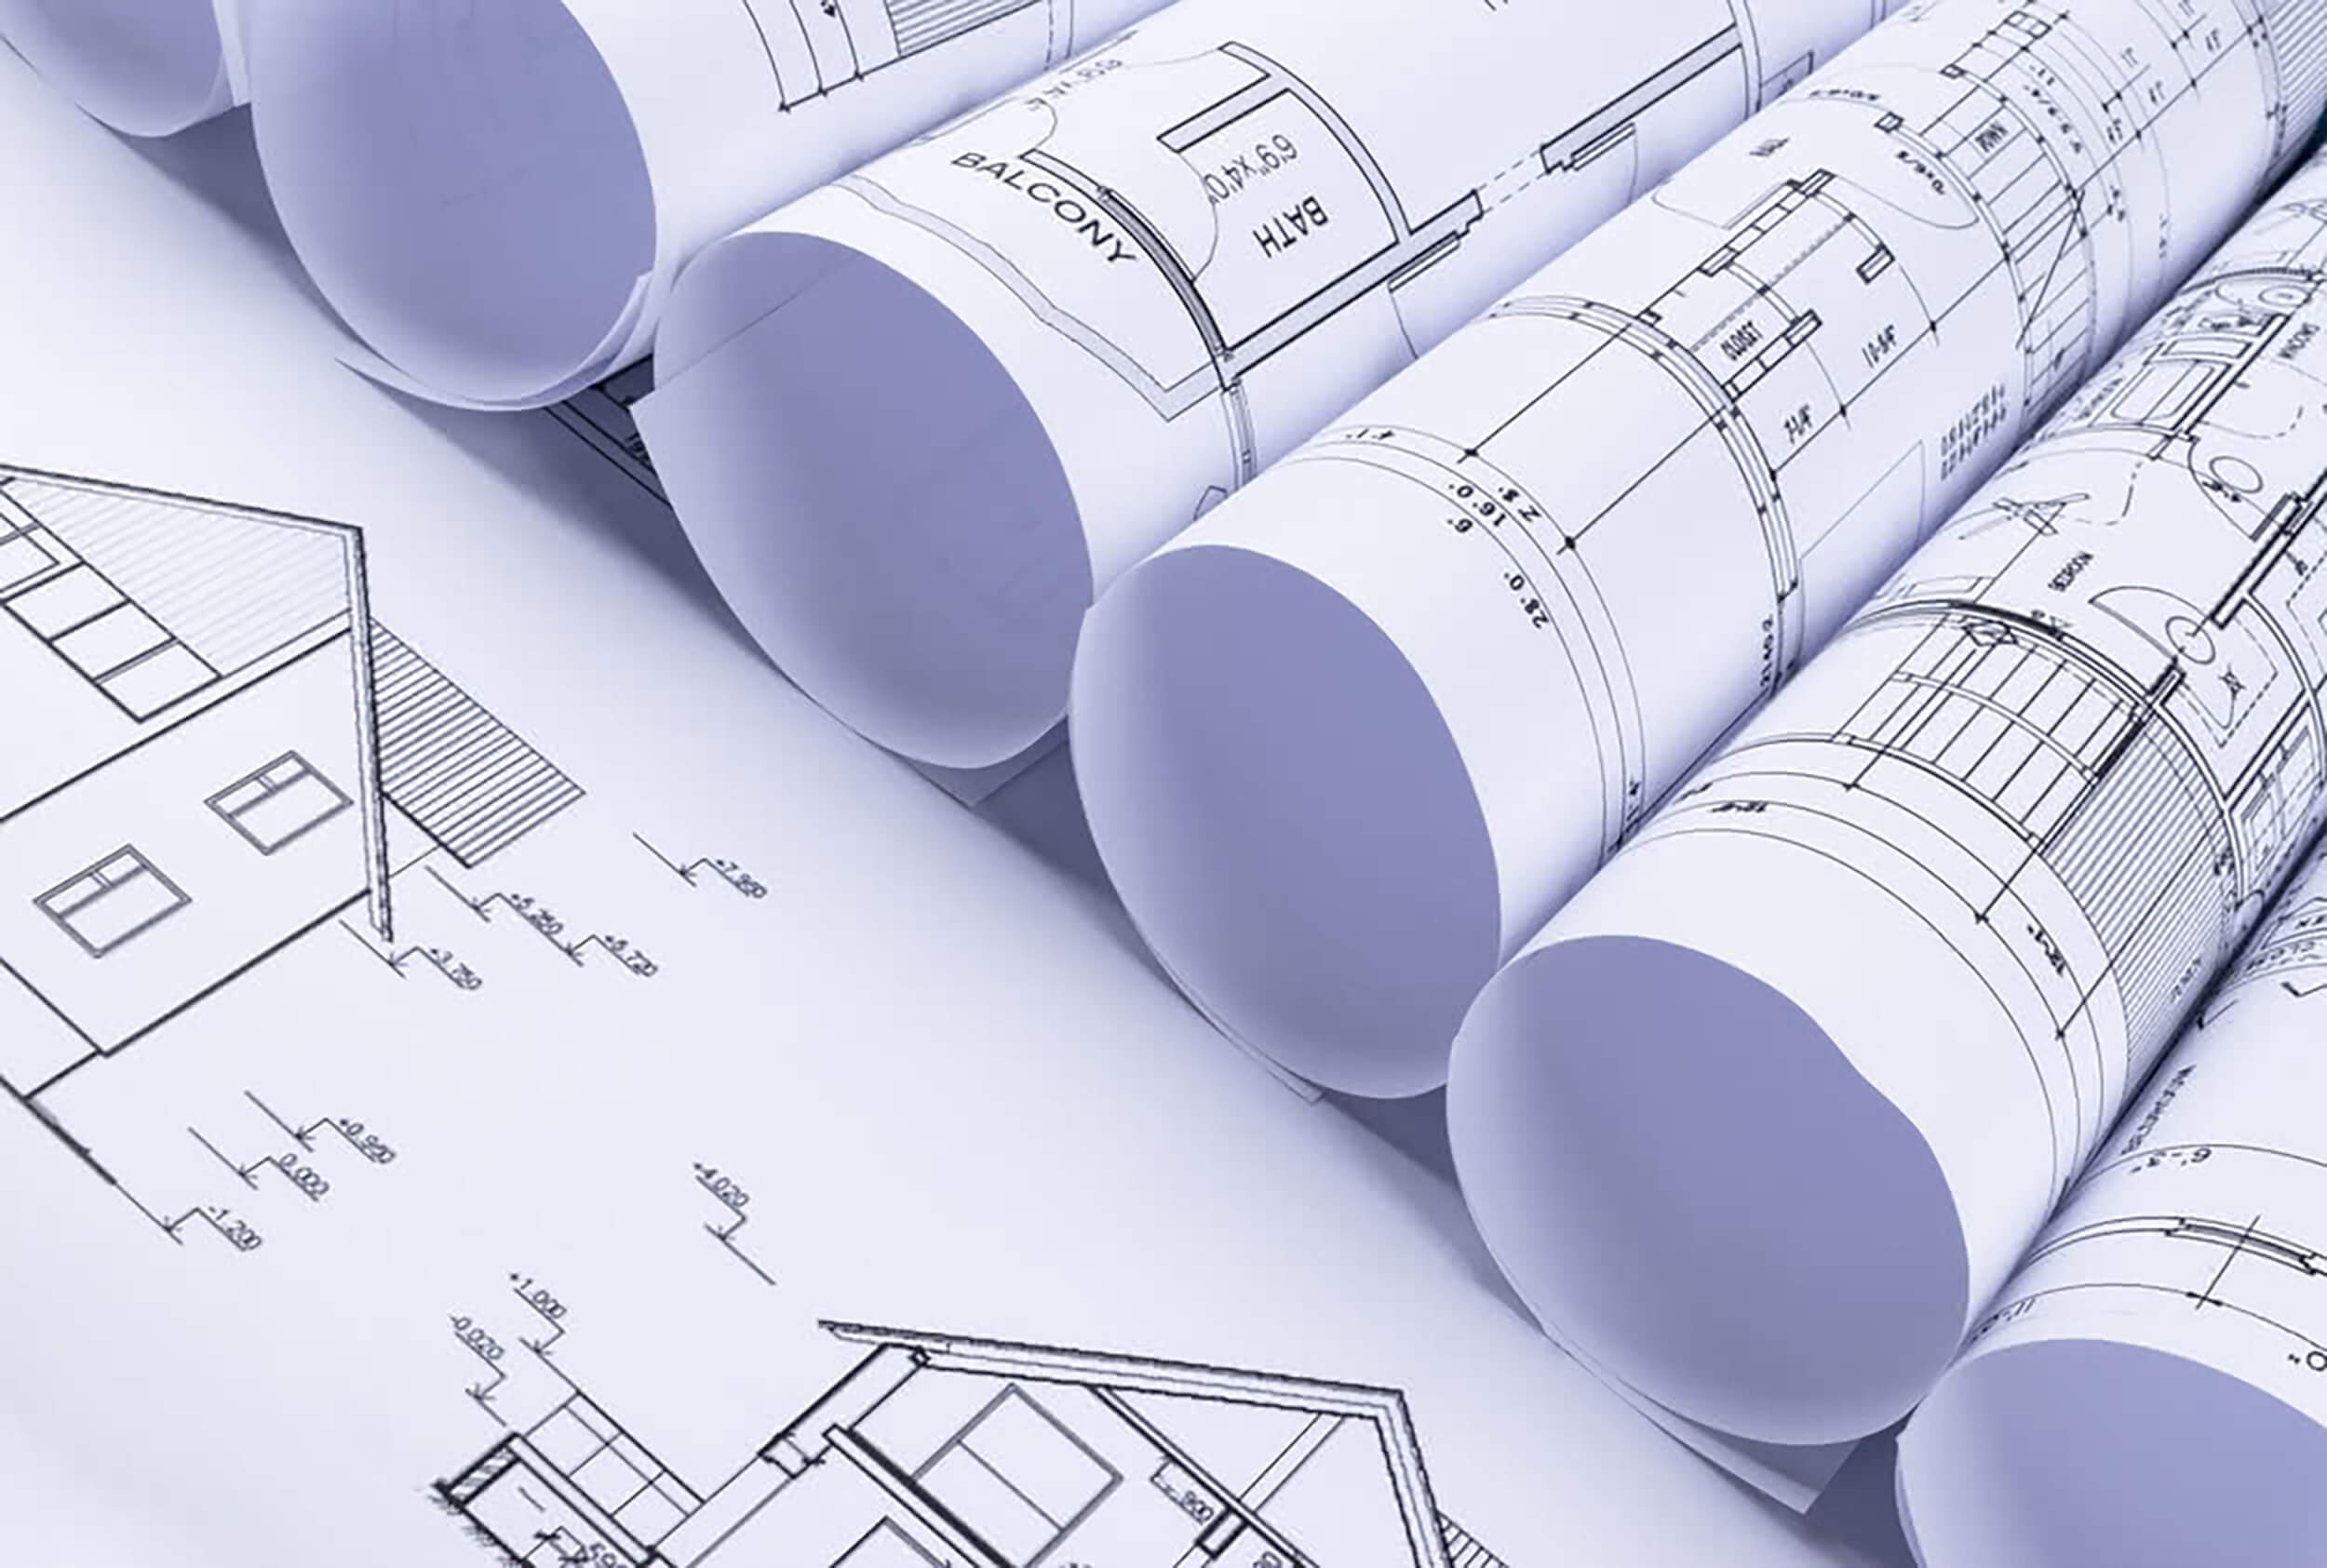 Close-up of engineering plans in preparation for building a new home